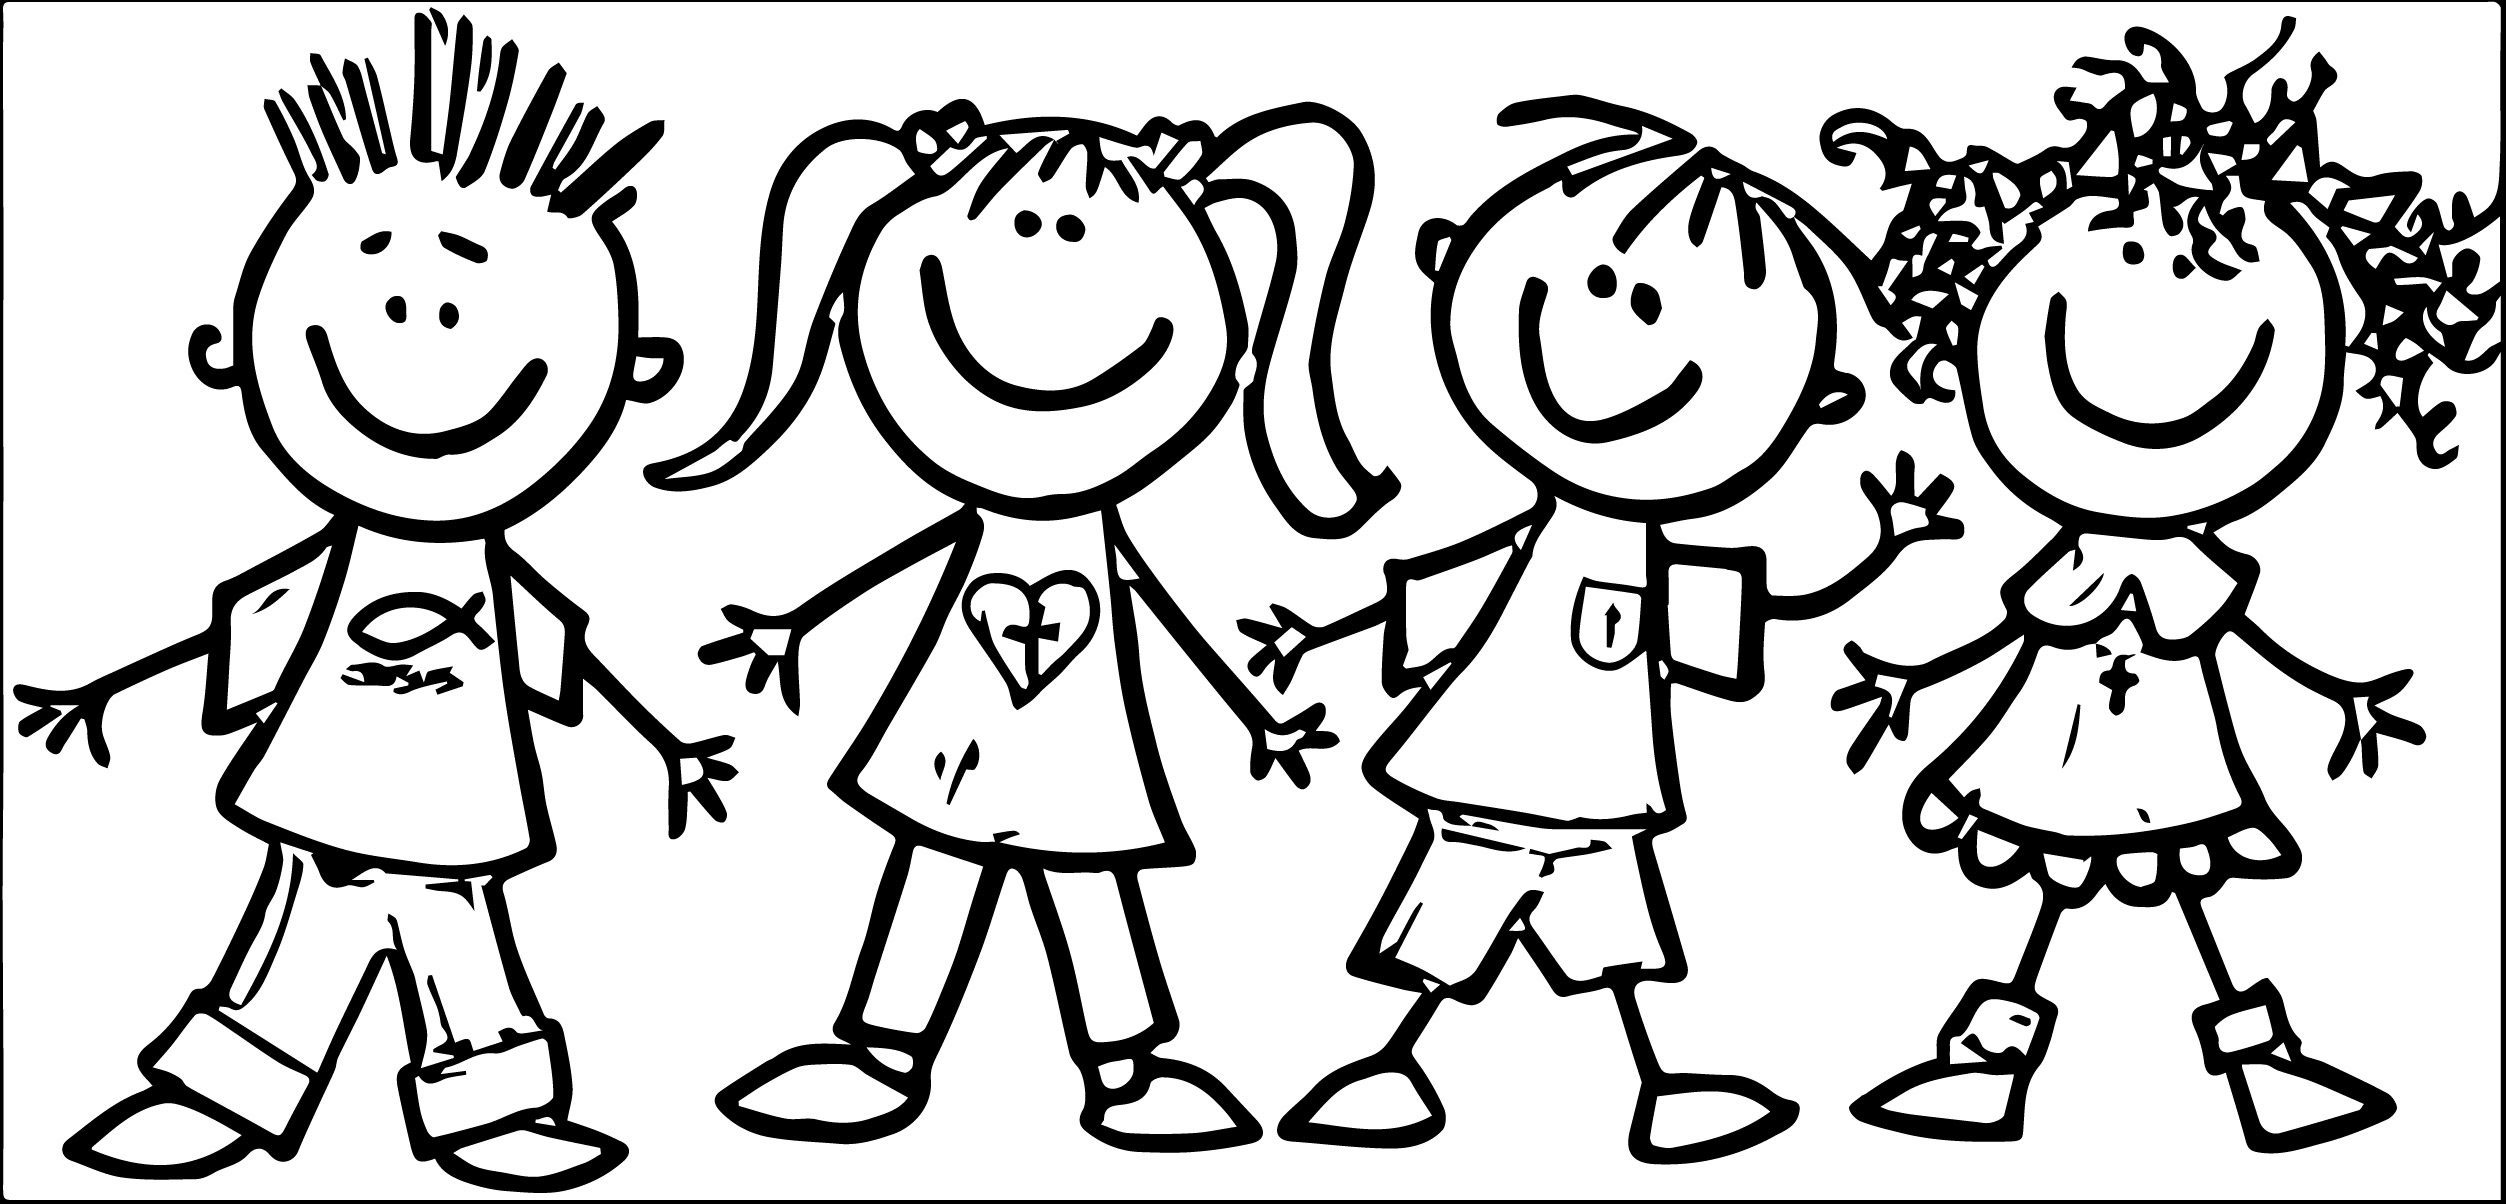 Friends clipart black and white Inspirational Group of friends.